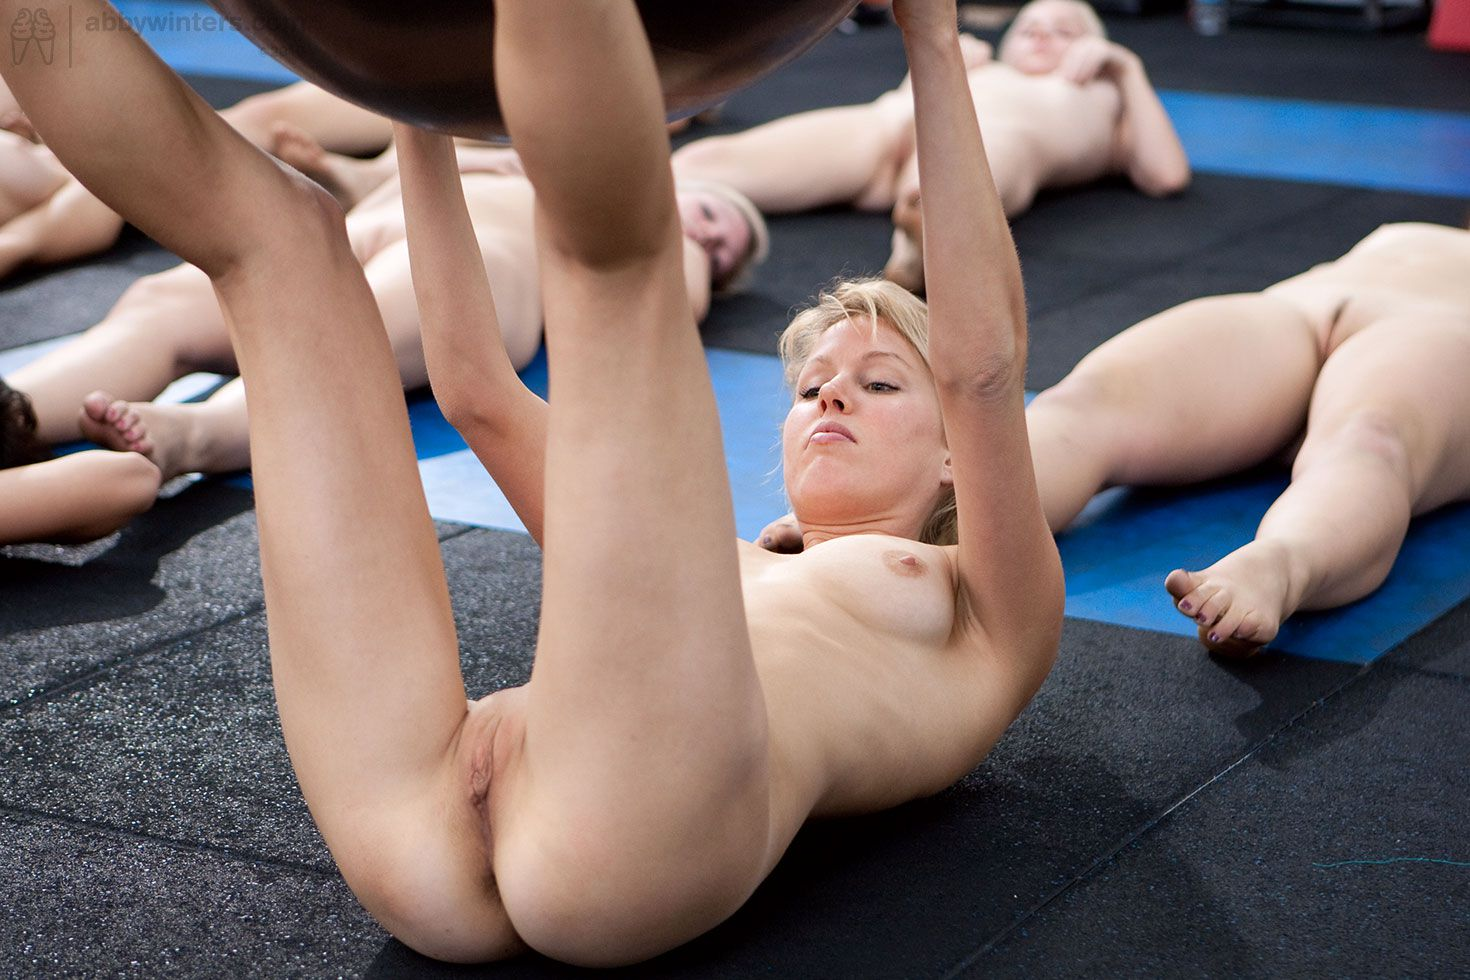 womenyoga-nu-sucking-nipples-in-sex